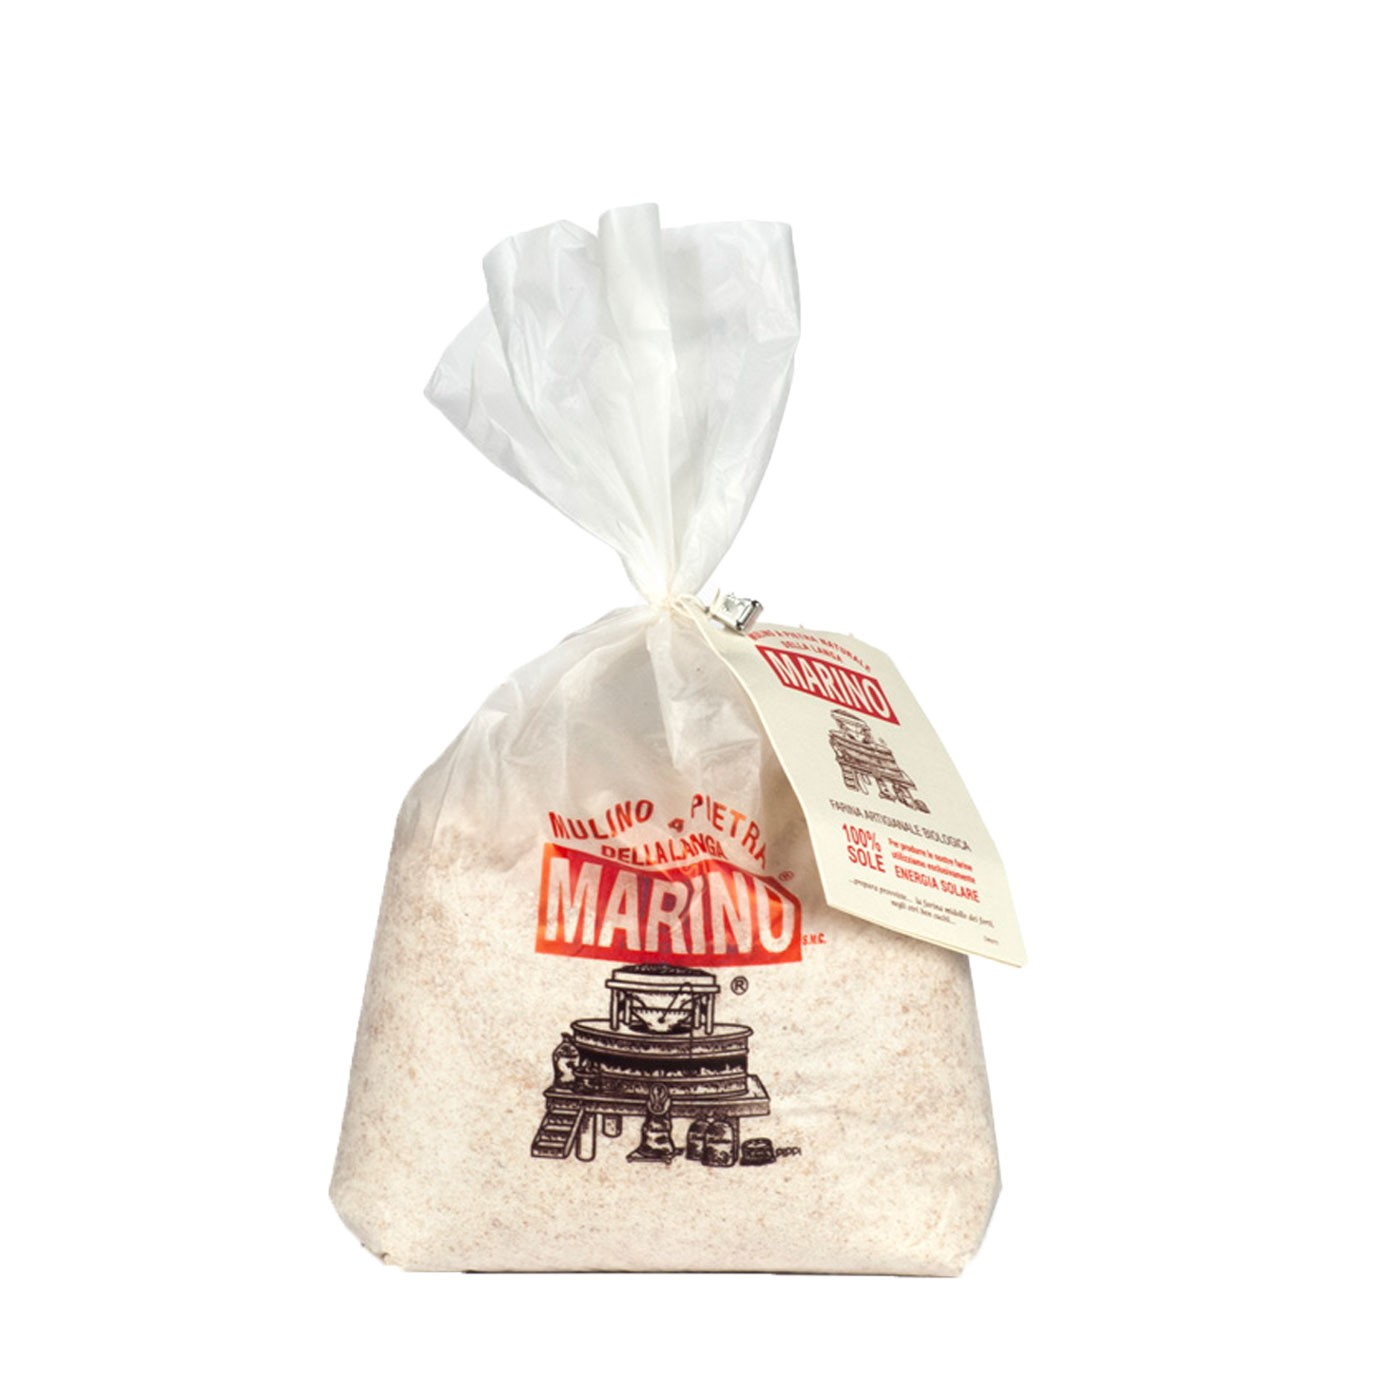 """Macina"" Whole Wheat Flour 35.3 oz"